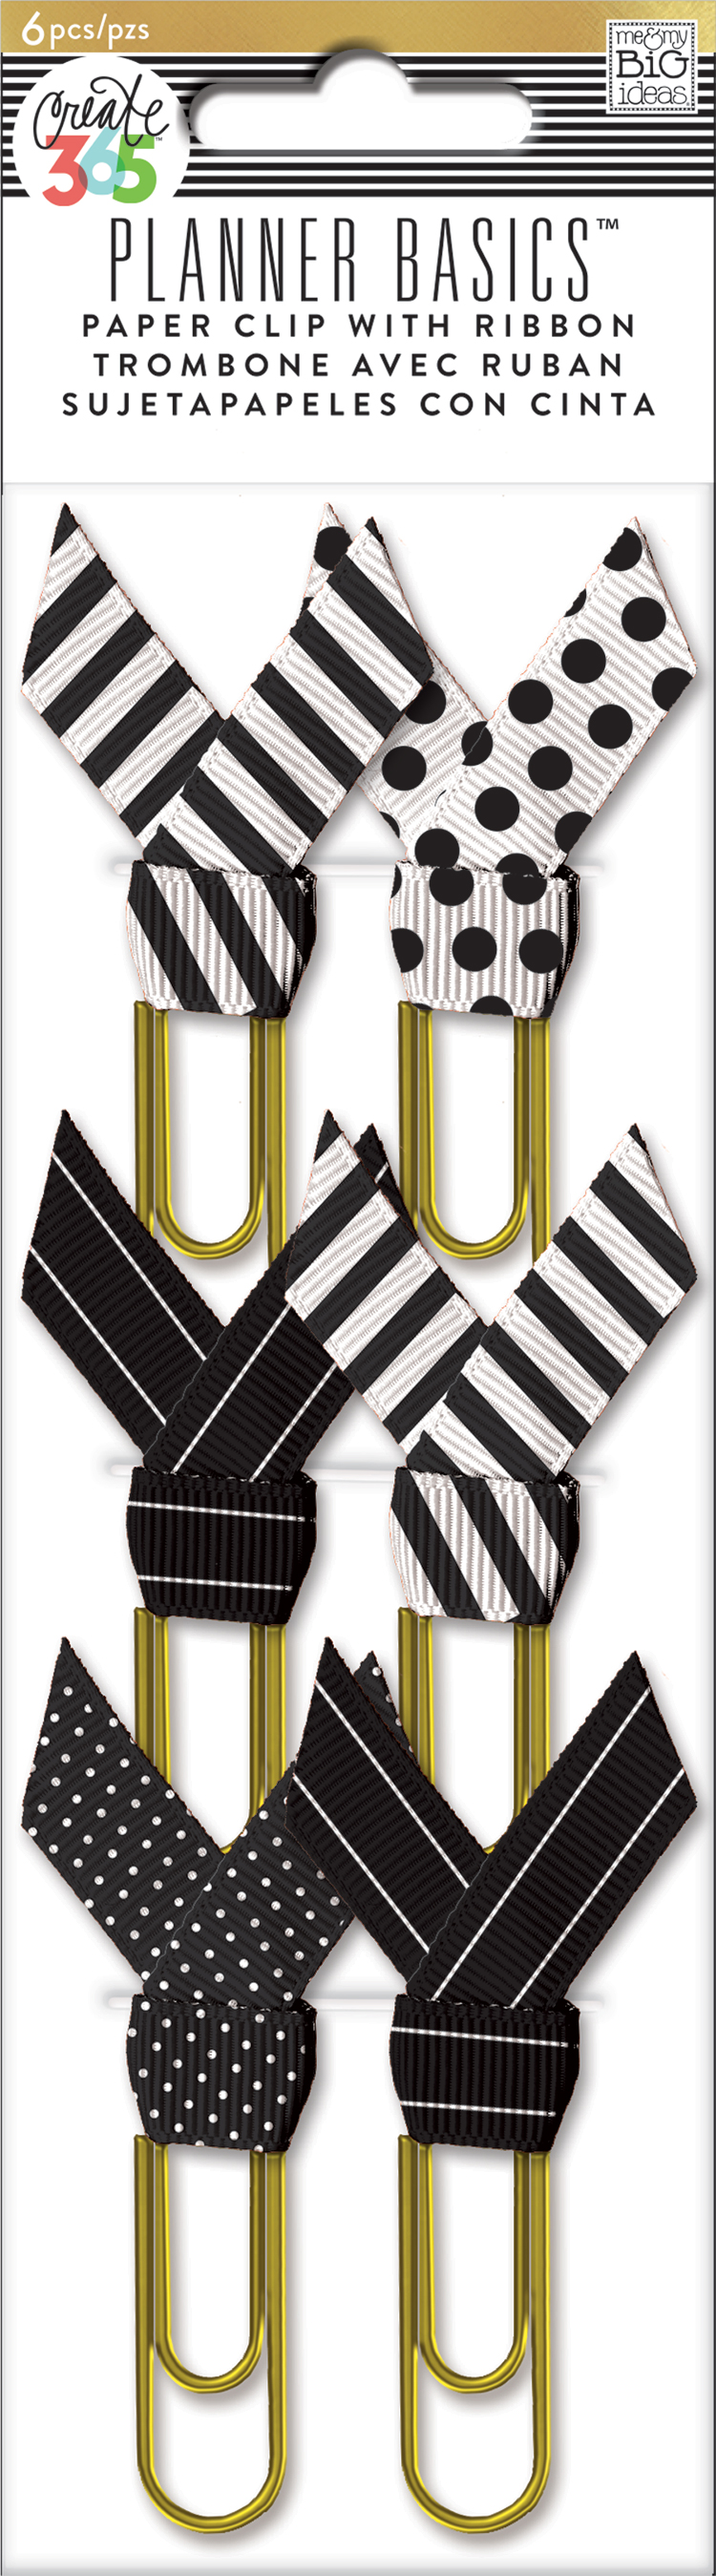 'Black & White' Paper Clips w: Ribbon Planner Basics™ for The Happy Planner™ | me & my BIG ideas.jpg